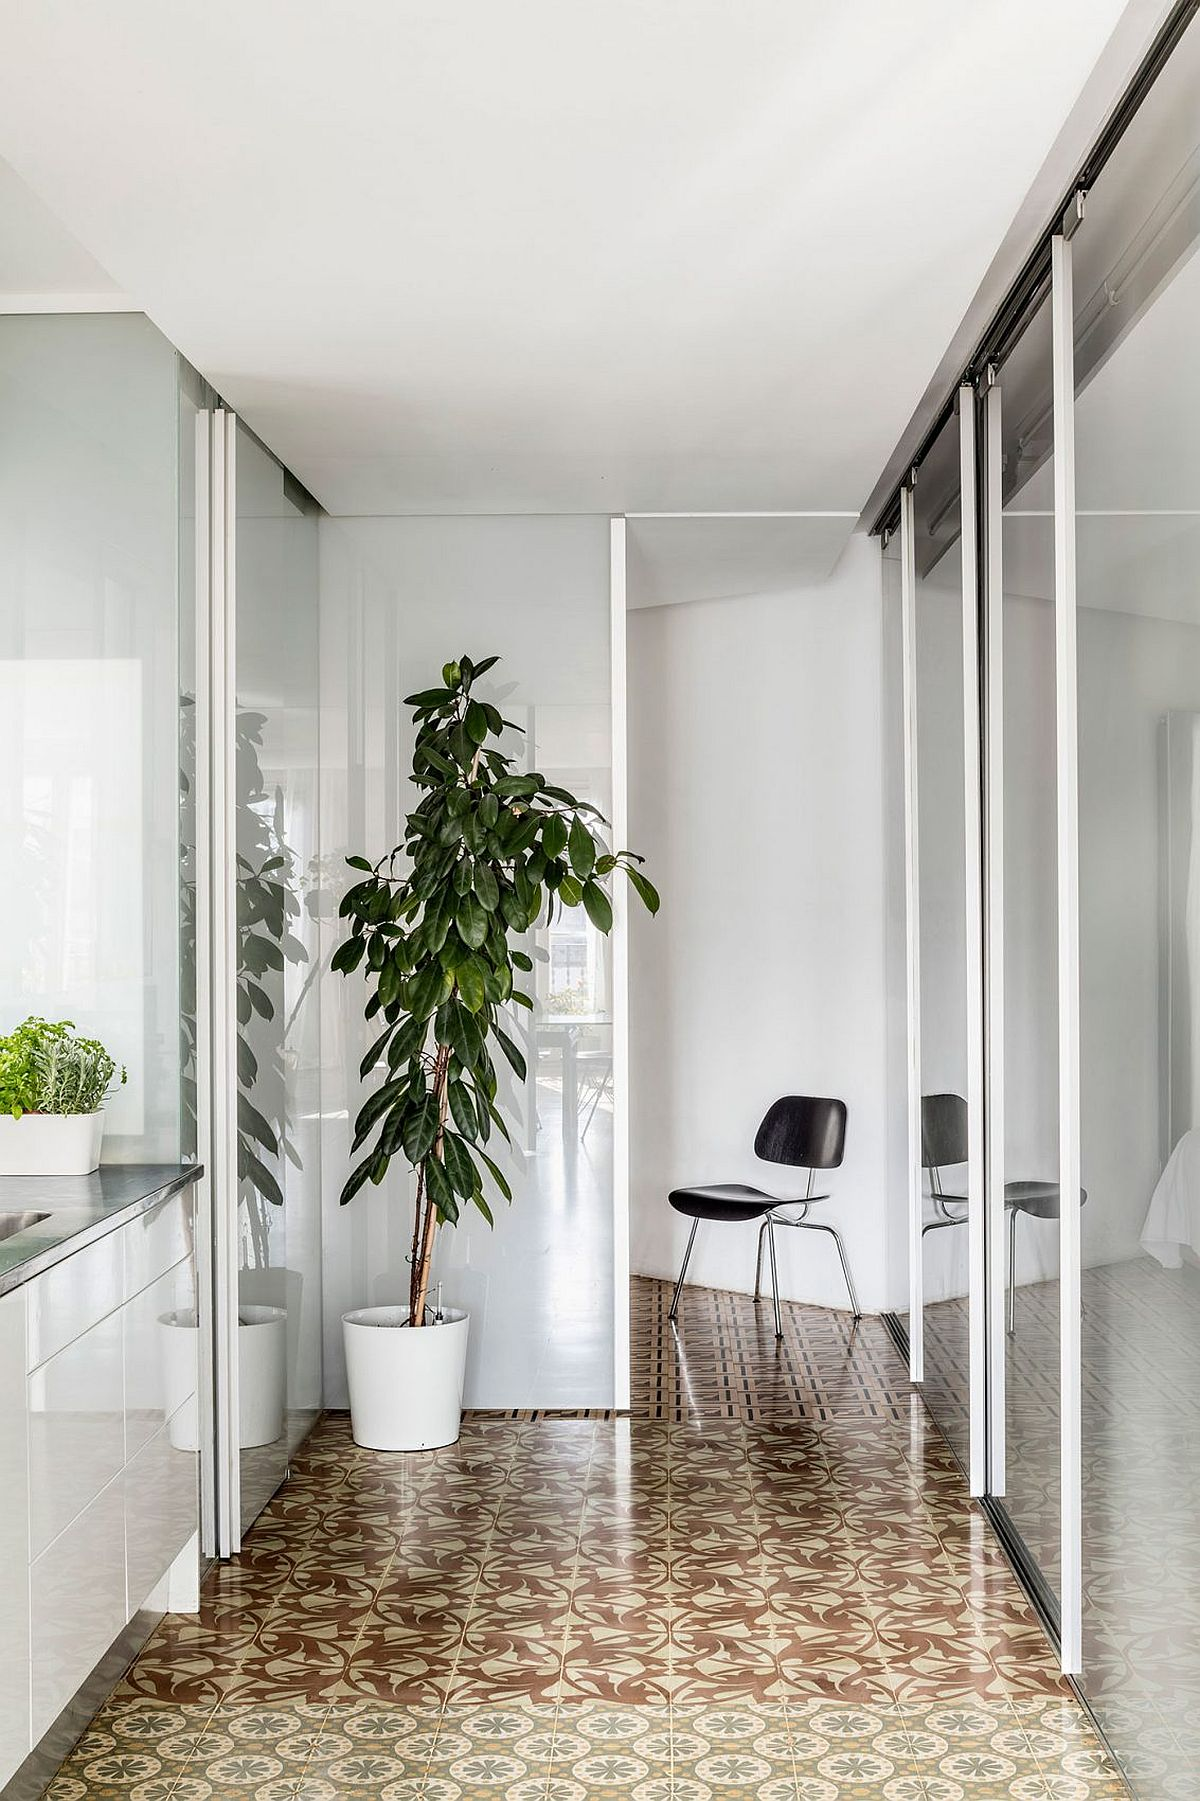 This 64sqm Apartment Reimagines Space Using Partitions And